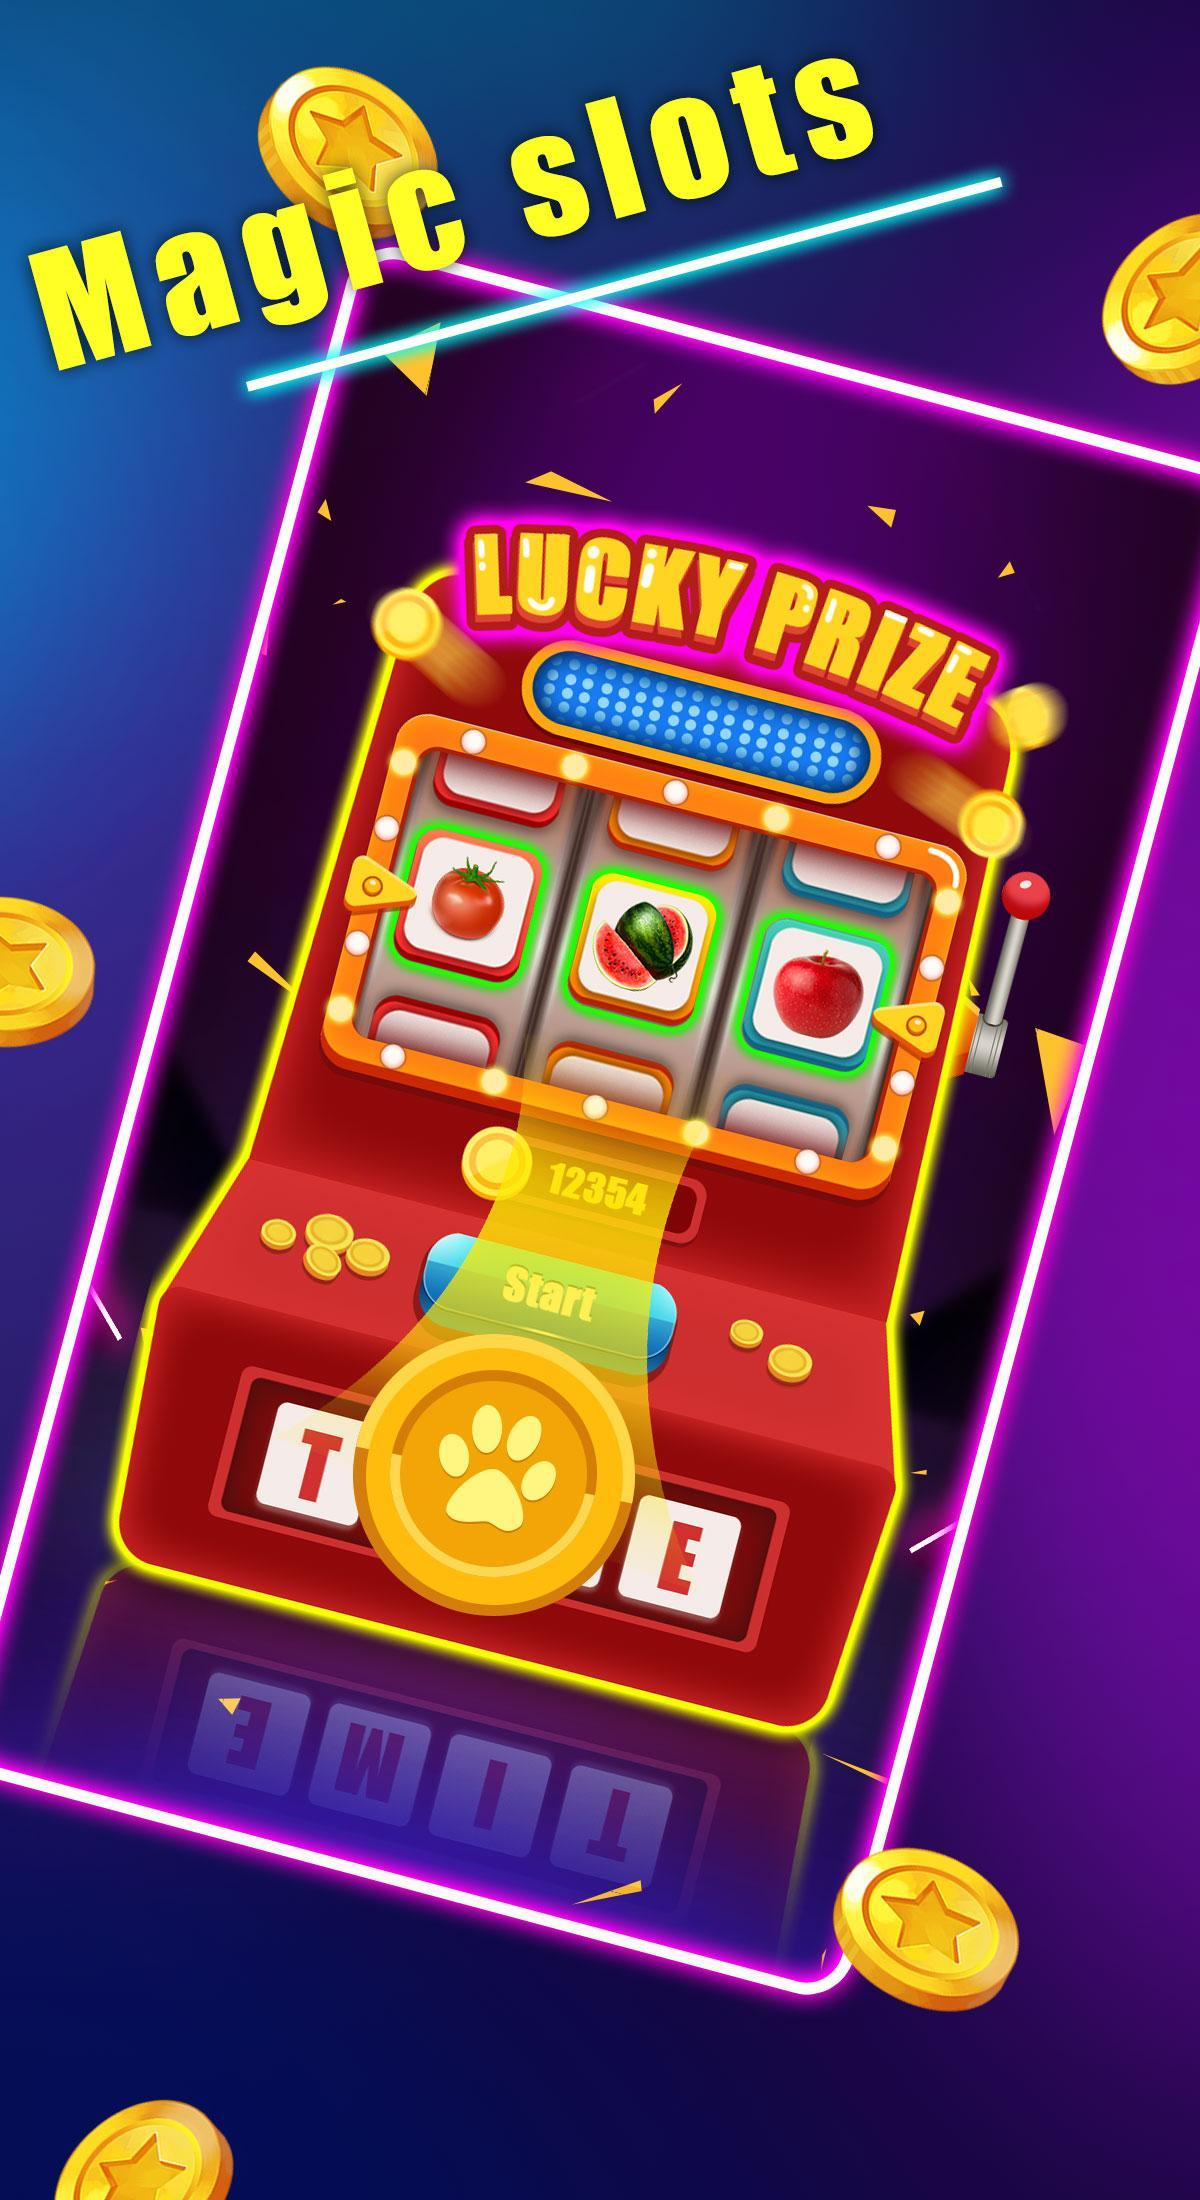 Lucky Time Win Rewards Every Day 3.1.69 Screenshot 4